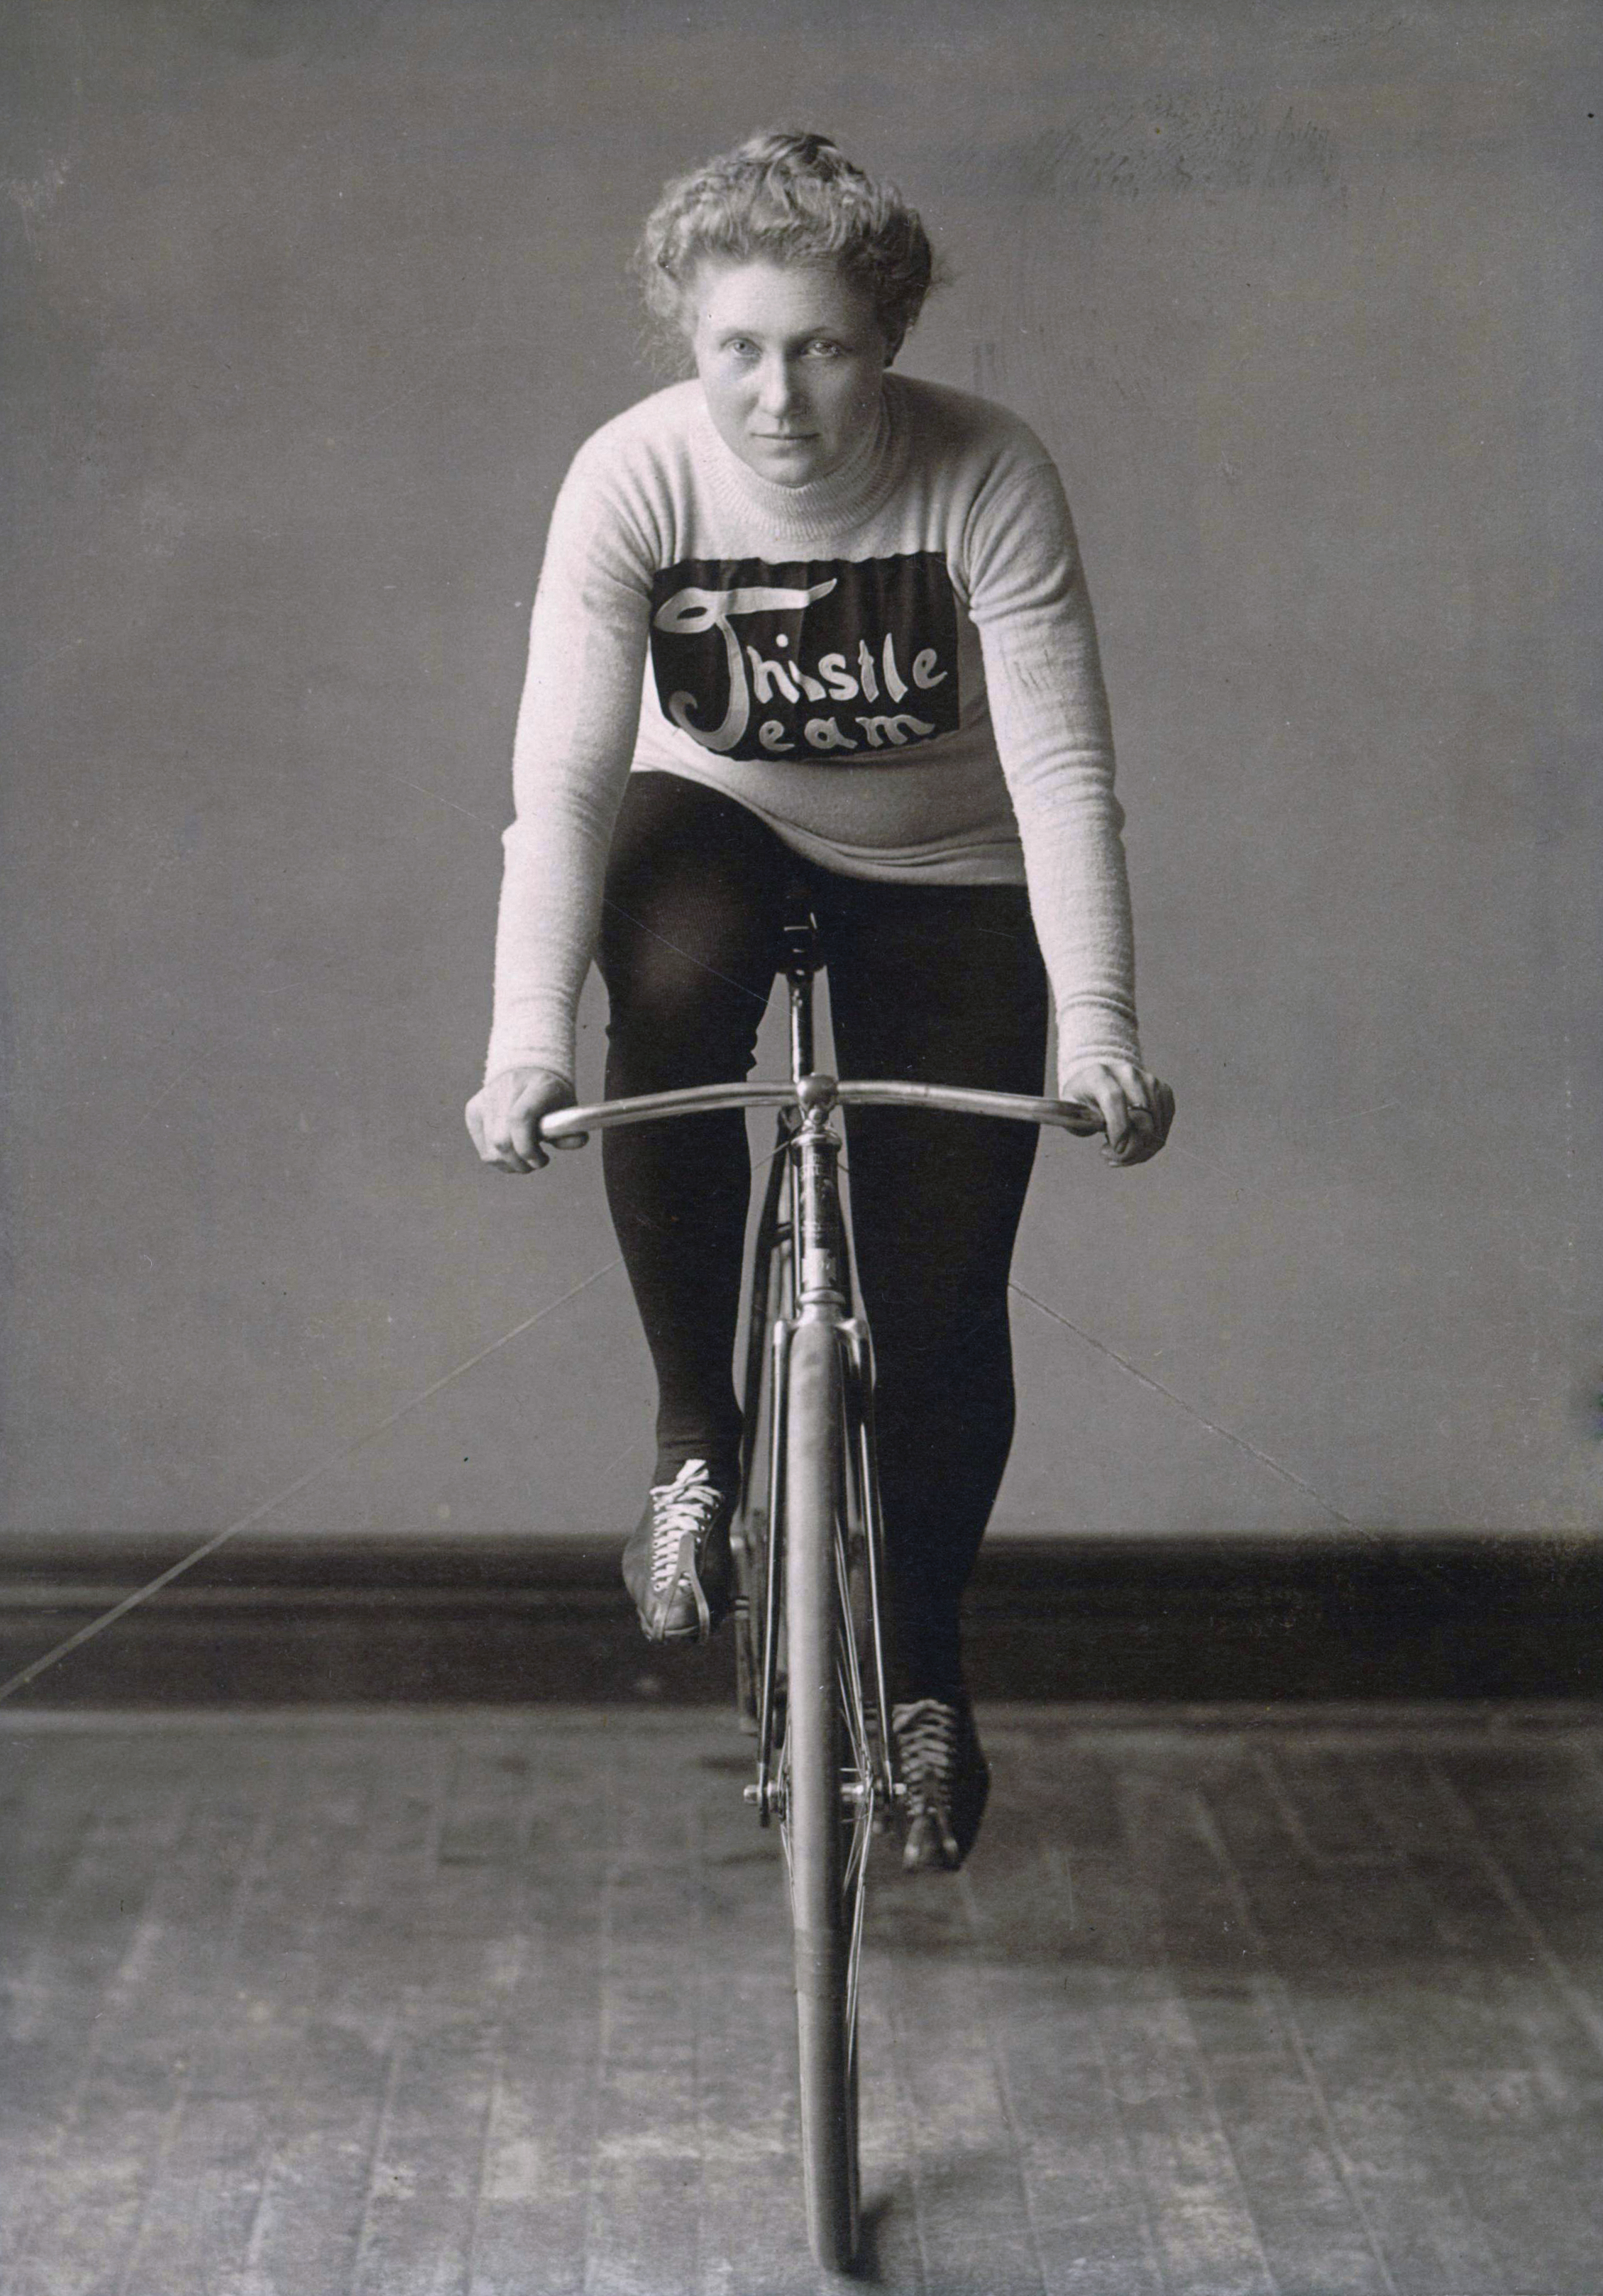 Tillie Anderson. Photgrapher and year unknown (Wikimedia Commons, Alice Olson Roepke)